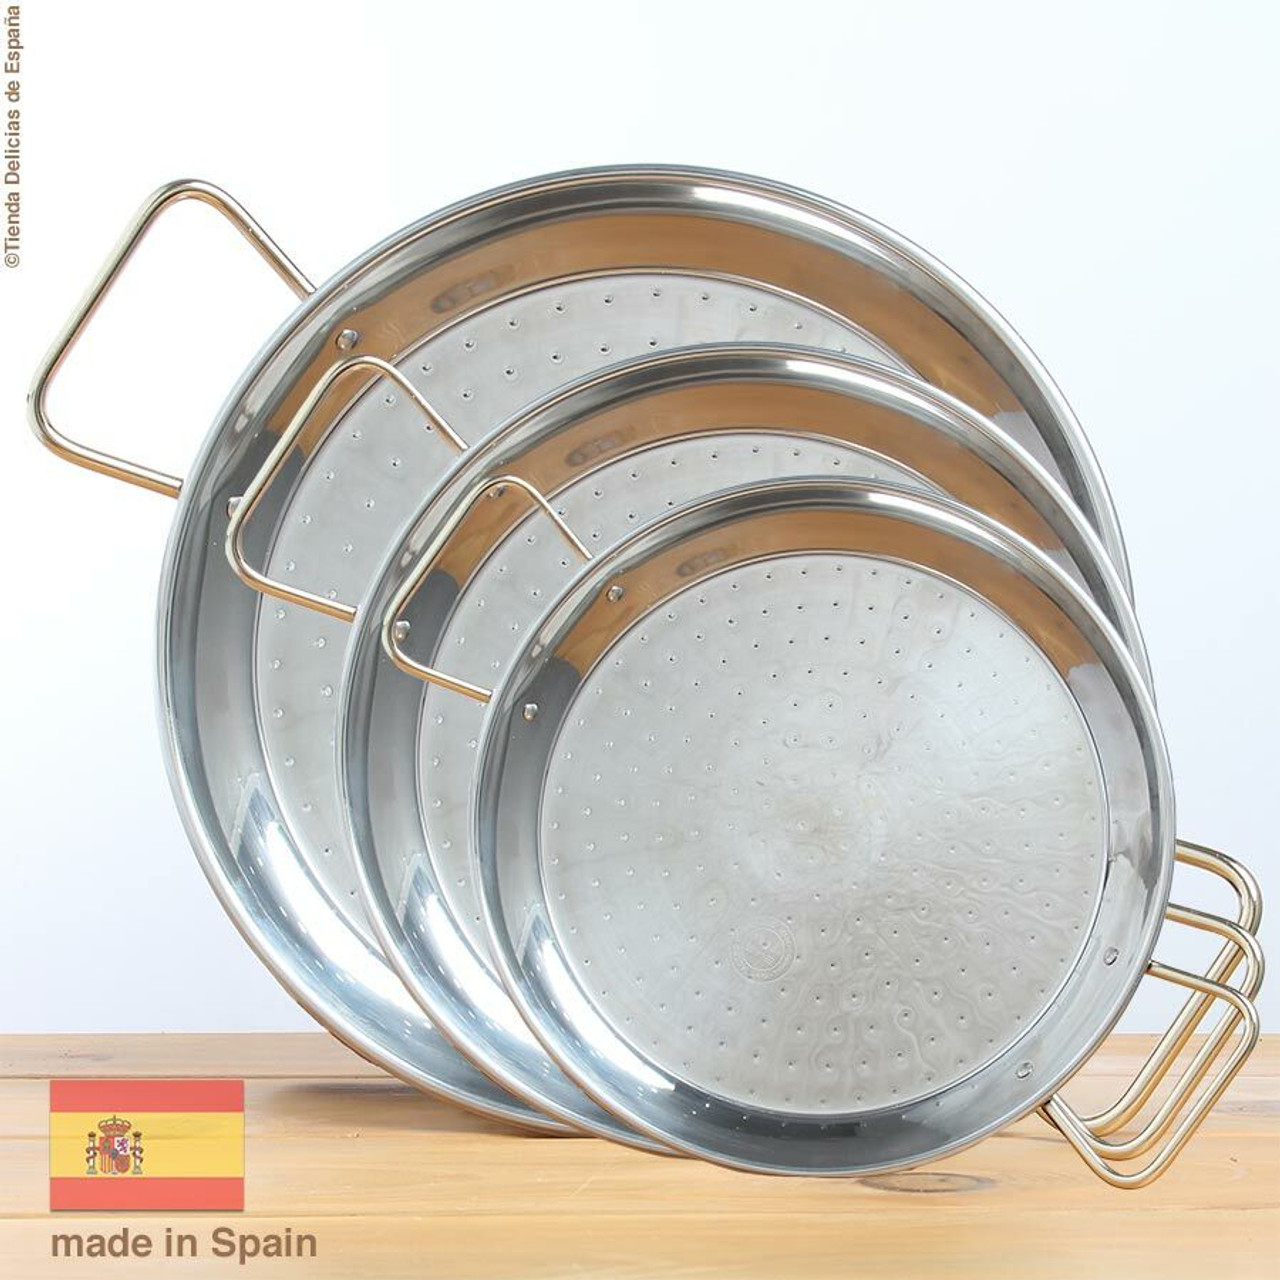 Paella Pans & Accessories